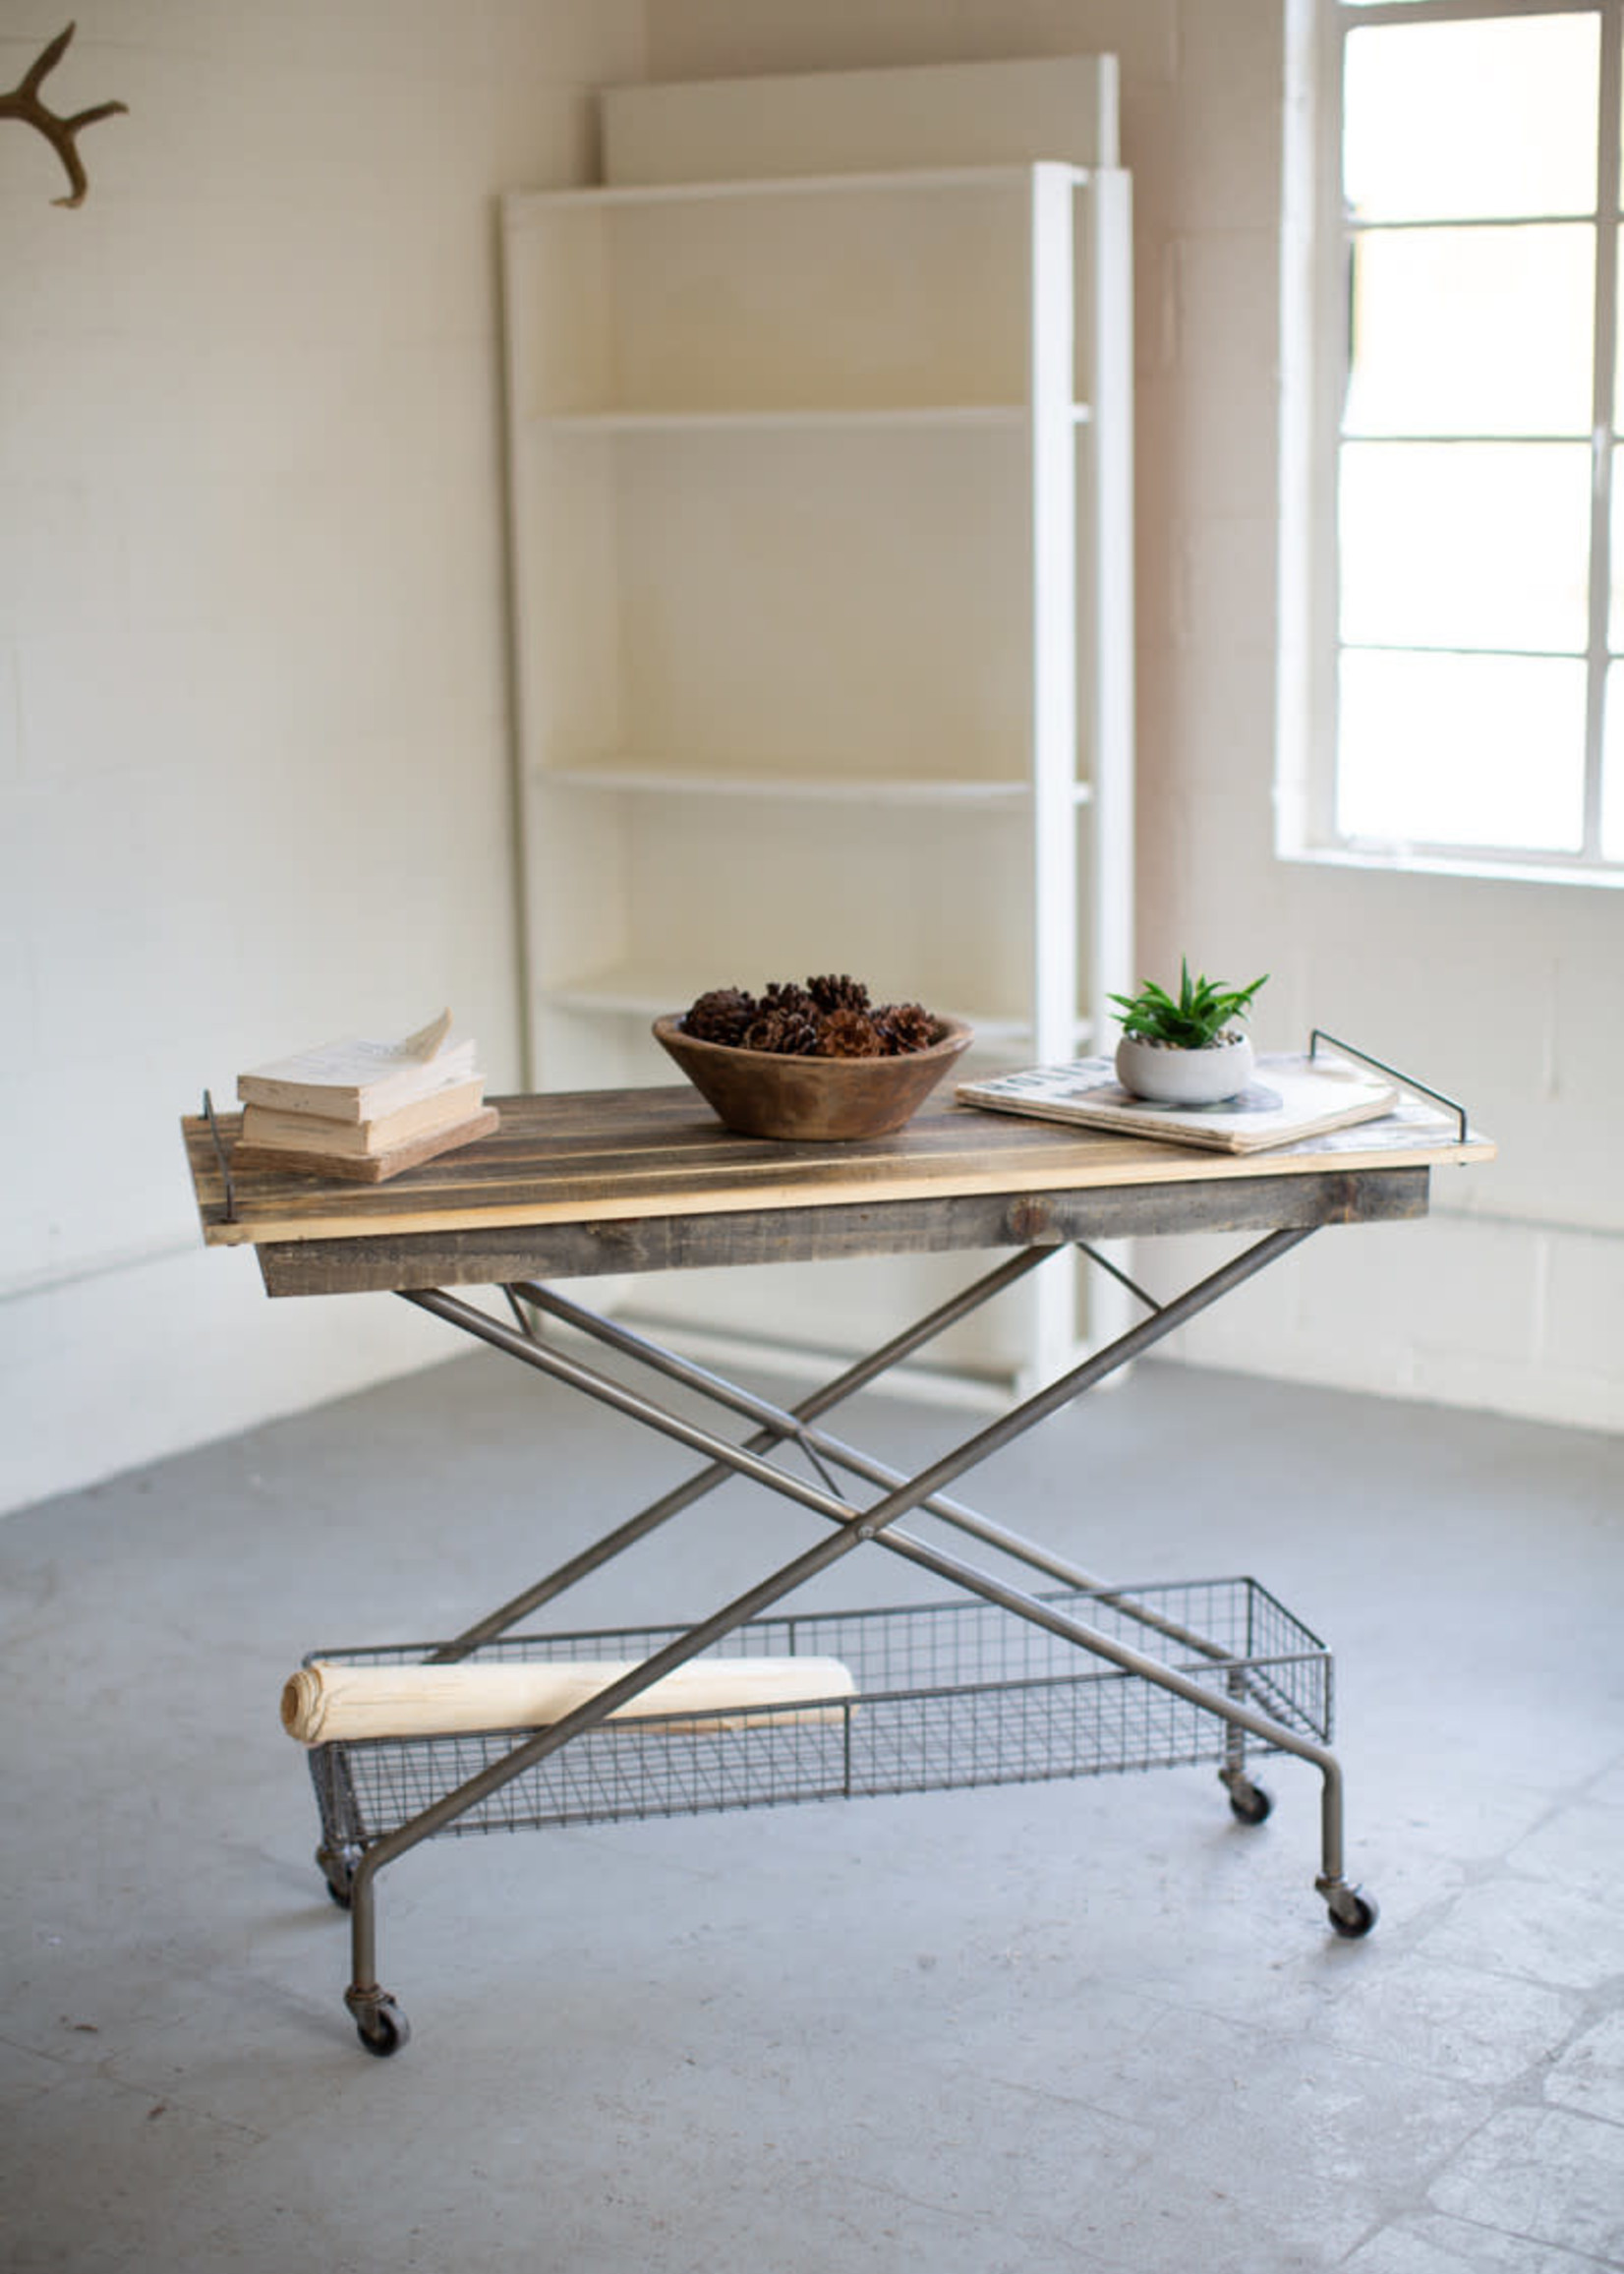 Recycled Wood Console Table w/ Metal Base Basket Casters